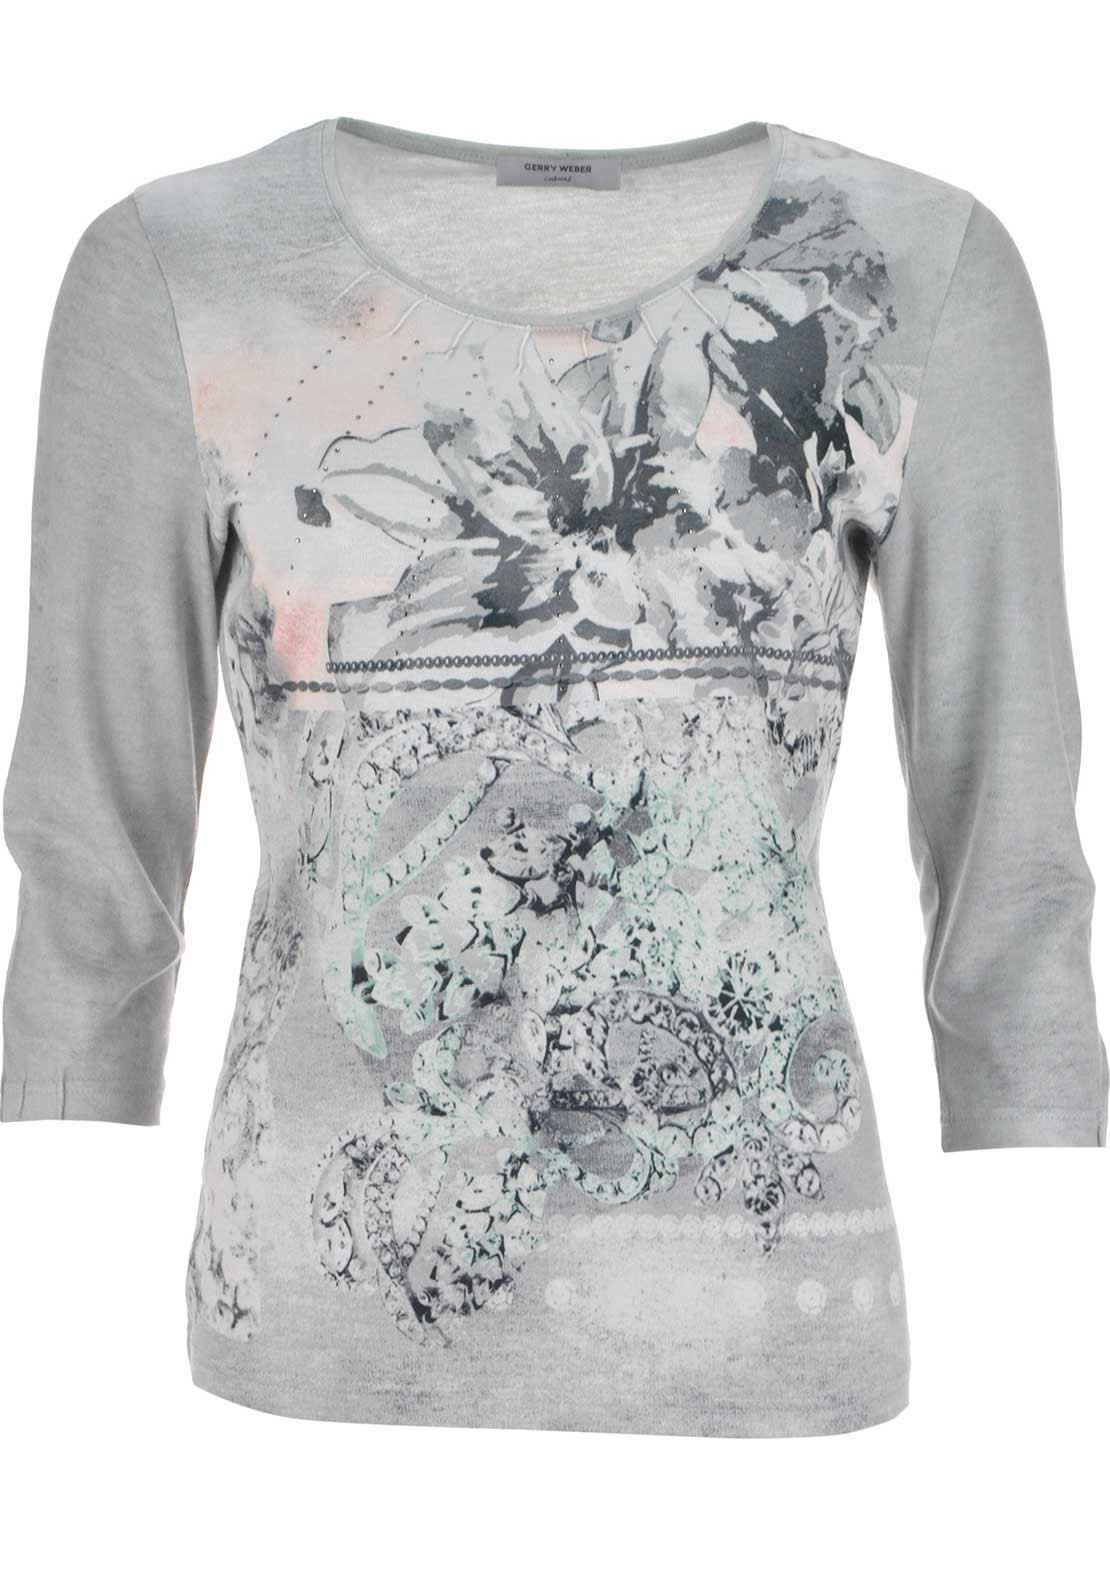 Gerry Weber Printed Cropped Sleeve Round Neck Top, Grey Multi